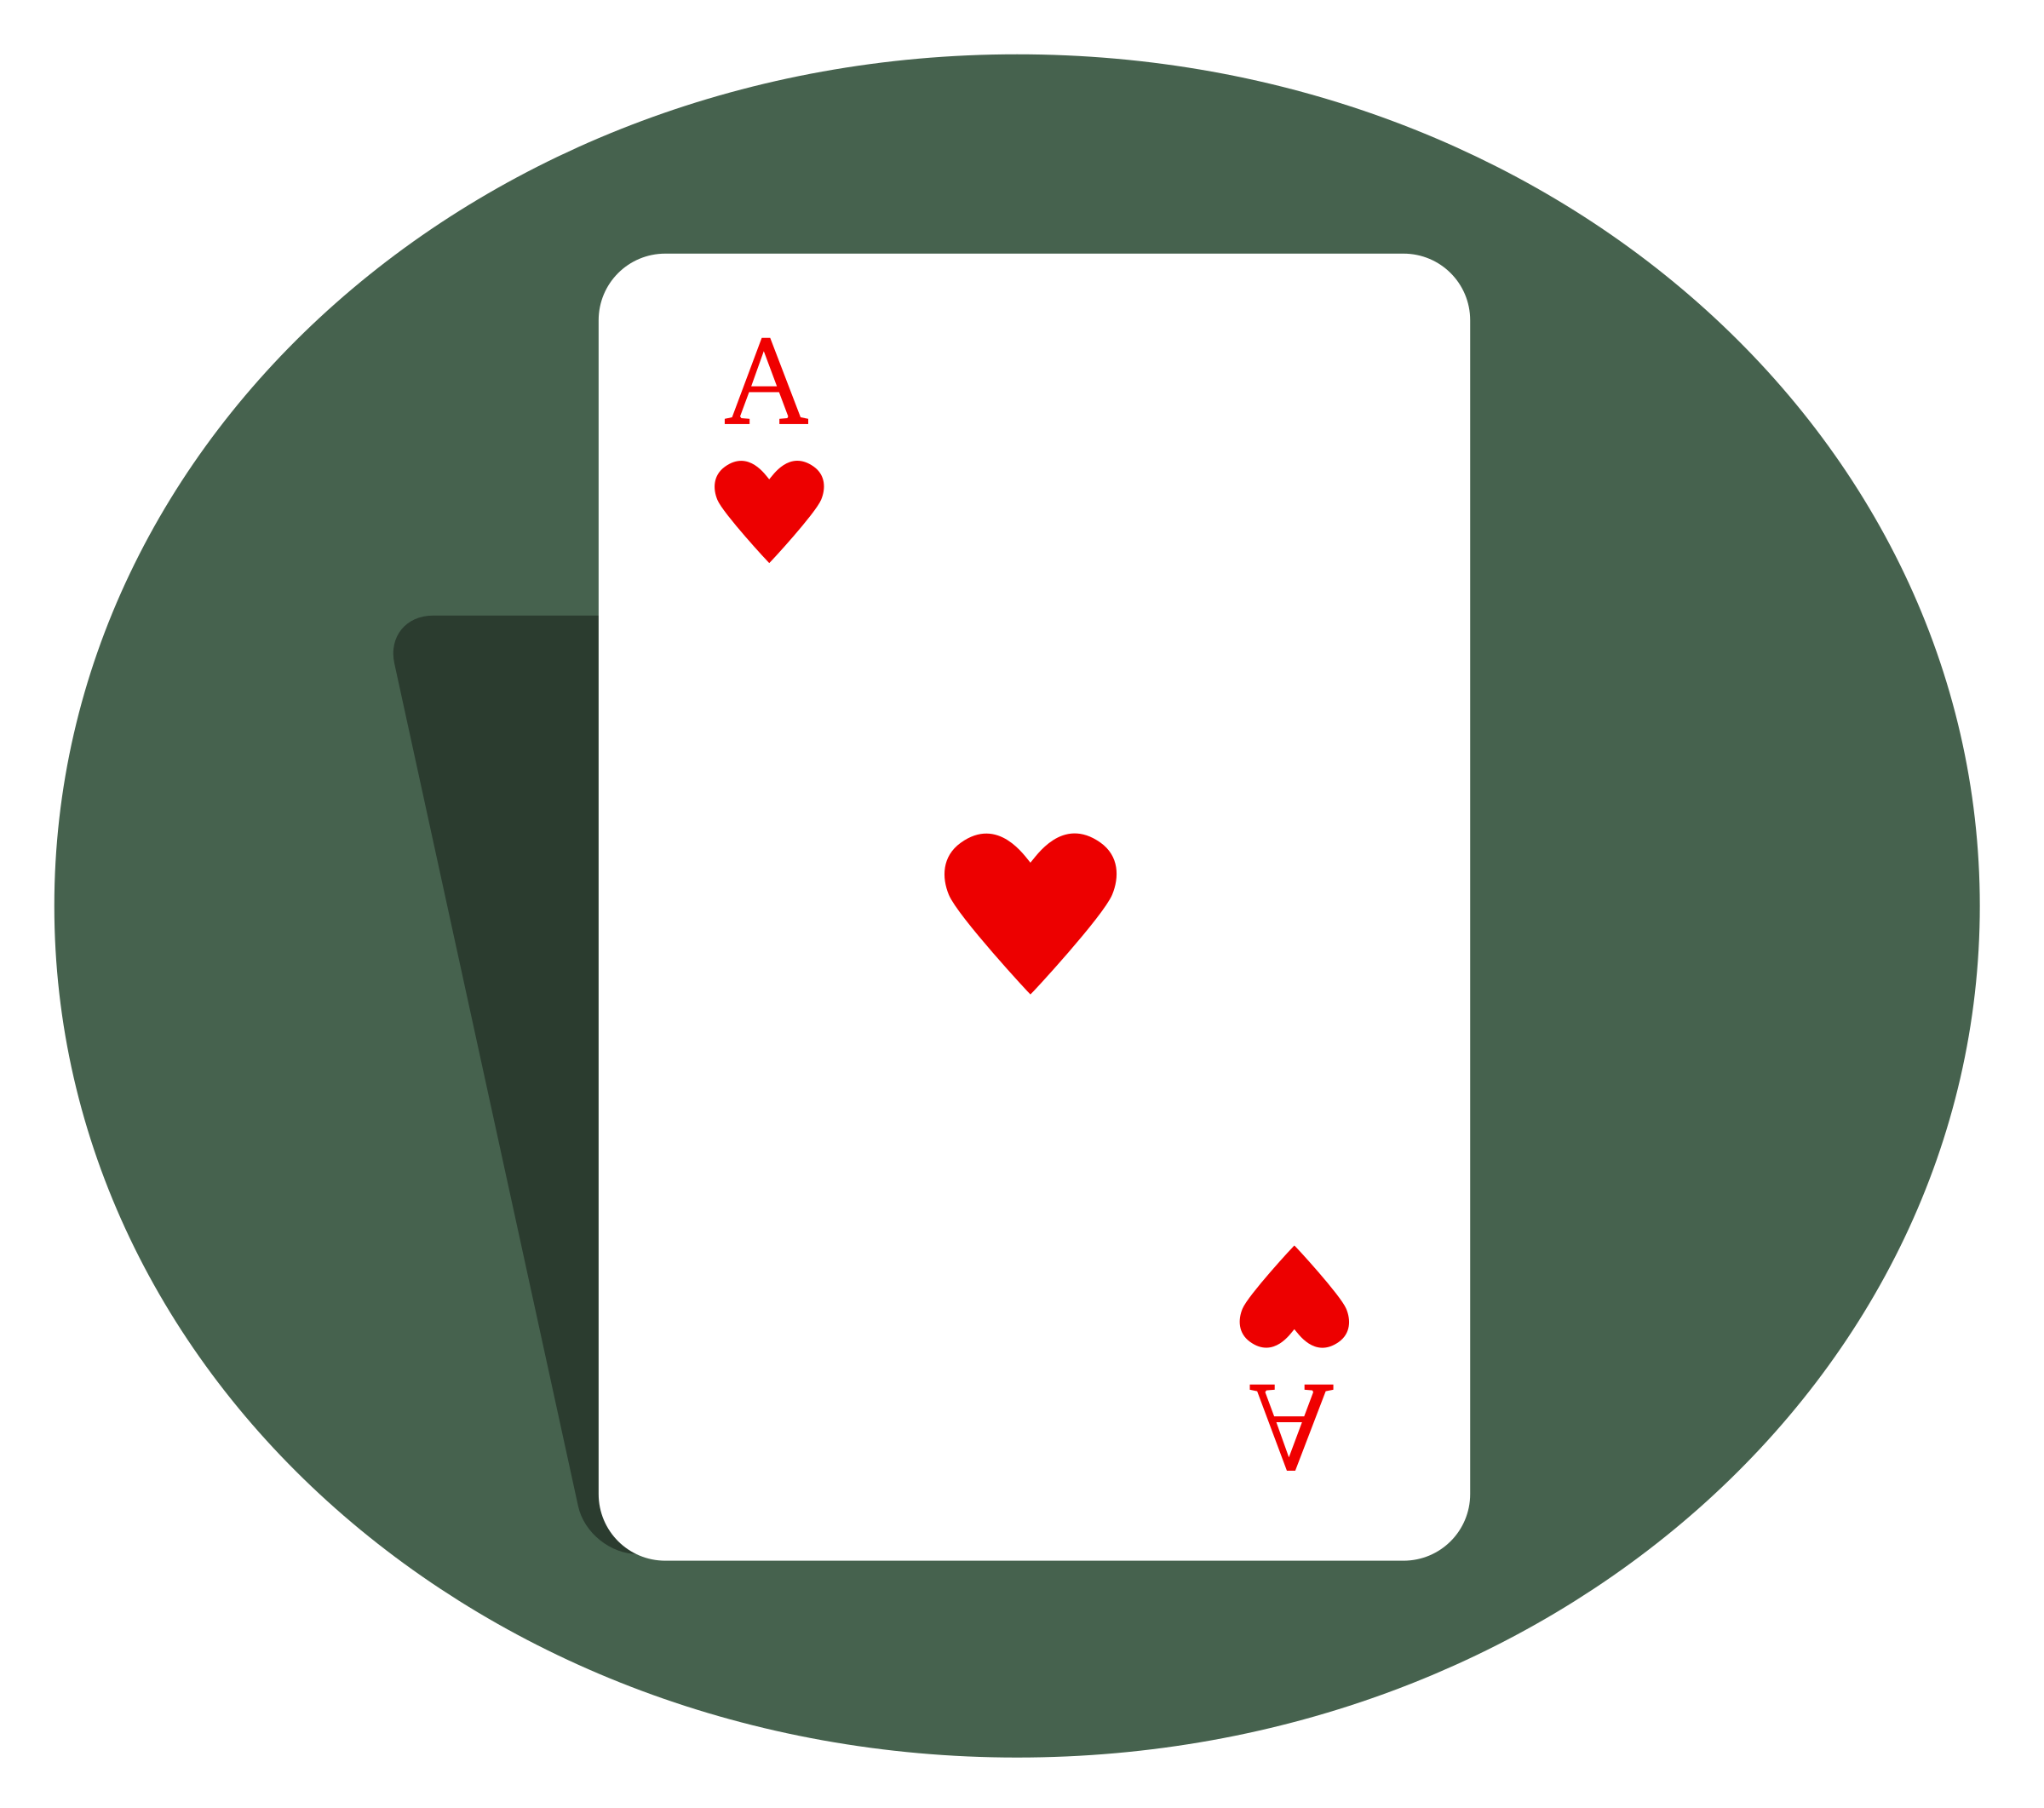 Ace of hearts by beakman